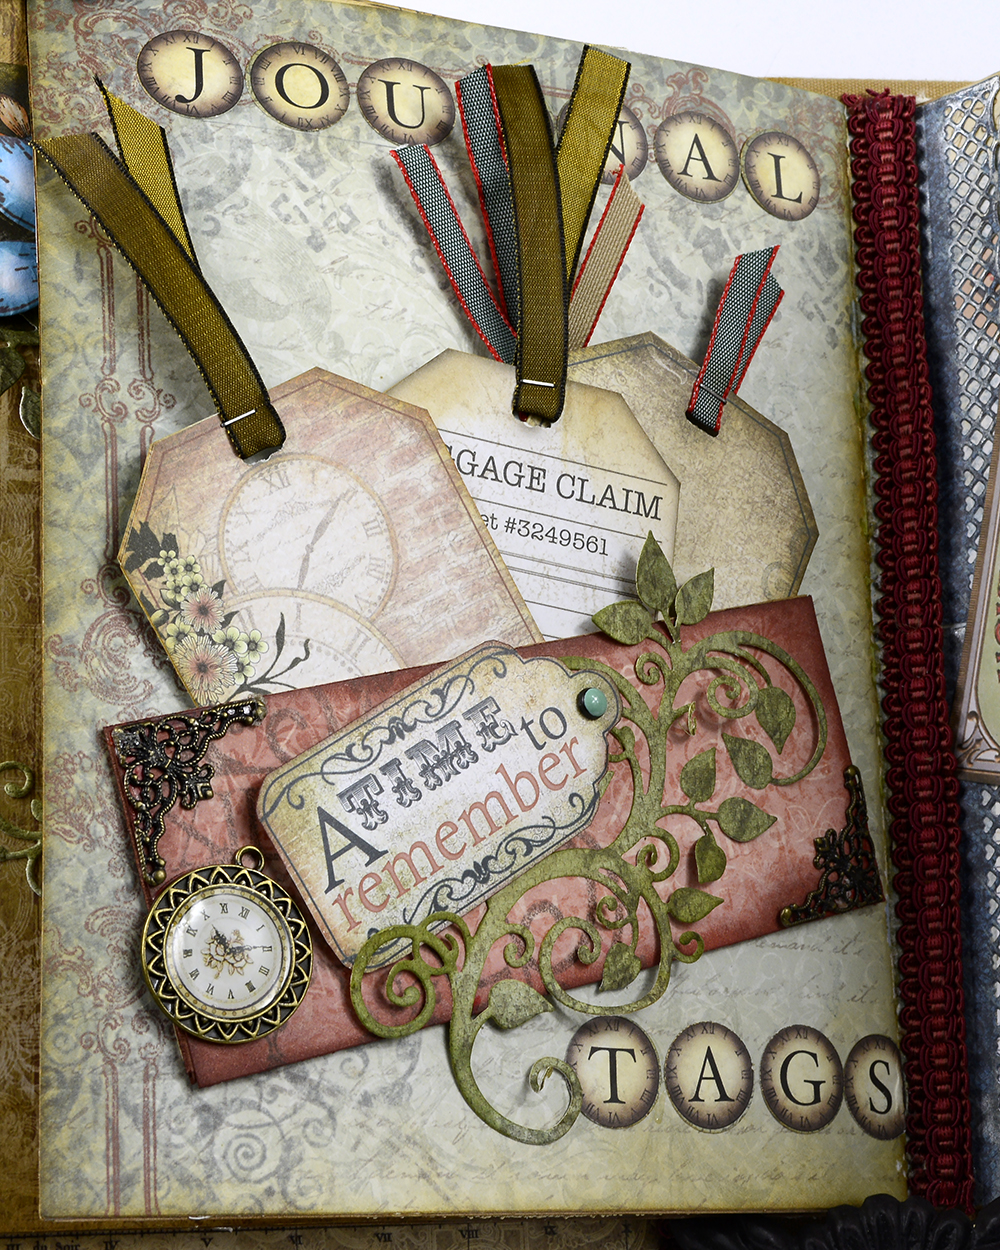 Journaling tags, included in Heartfelts paper collections, are included here for notes.